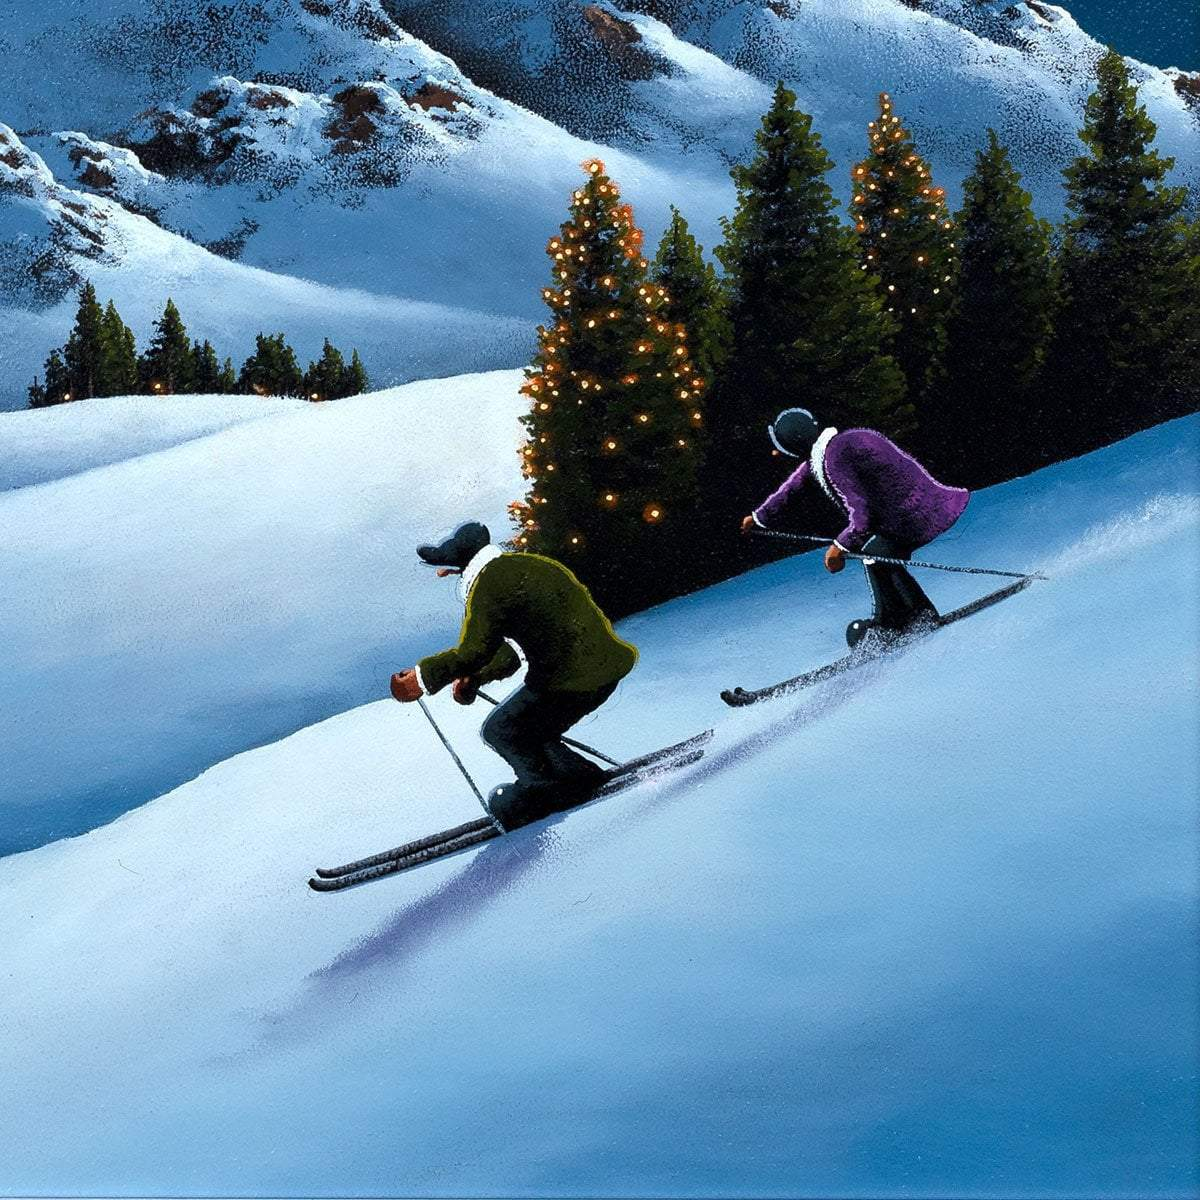 Race You to the Bottom! - Original David Renshaw Framed